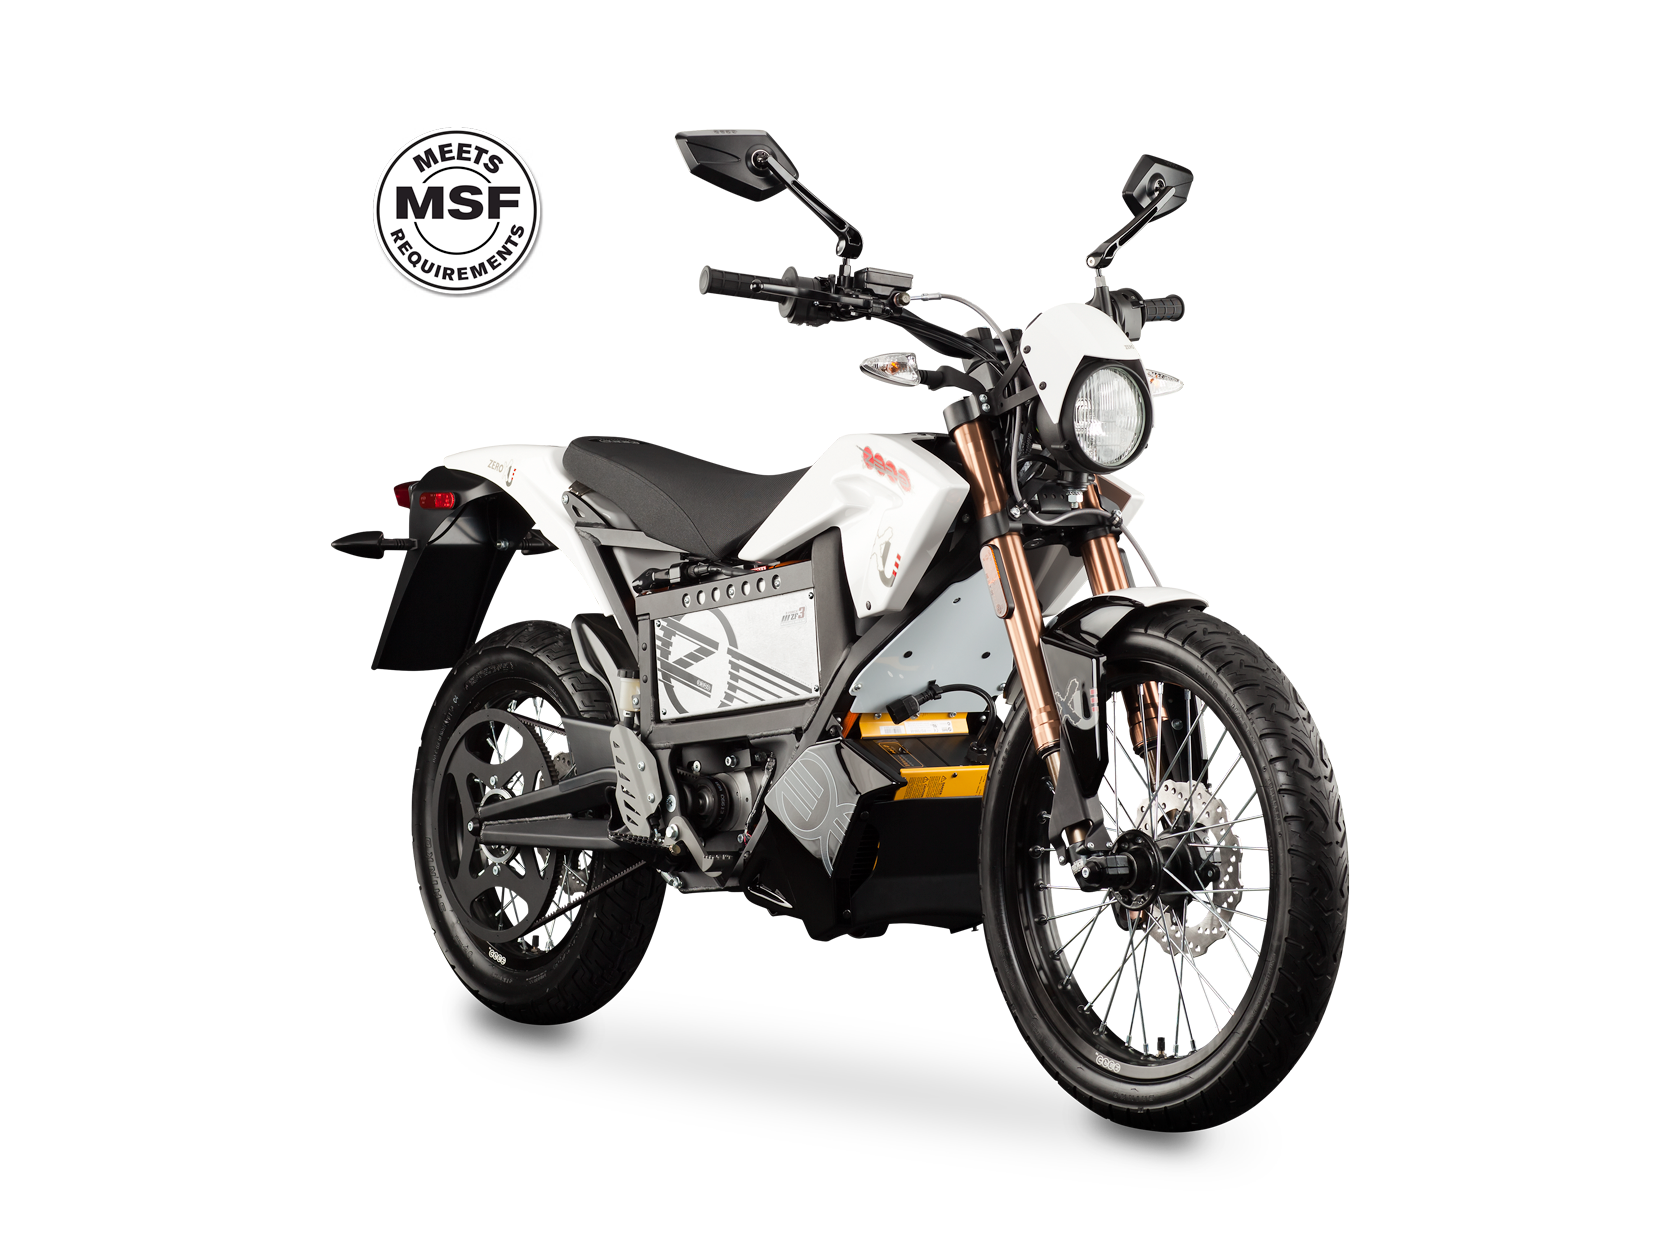 2012 Zero XU Training Motorcycle: Angle Left, MSF Badge